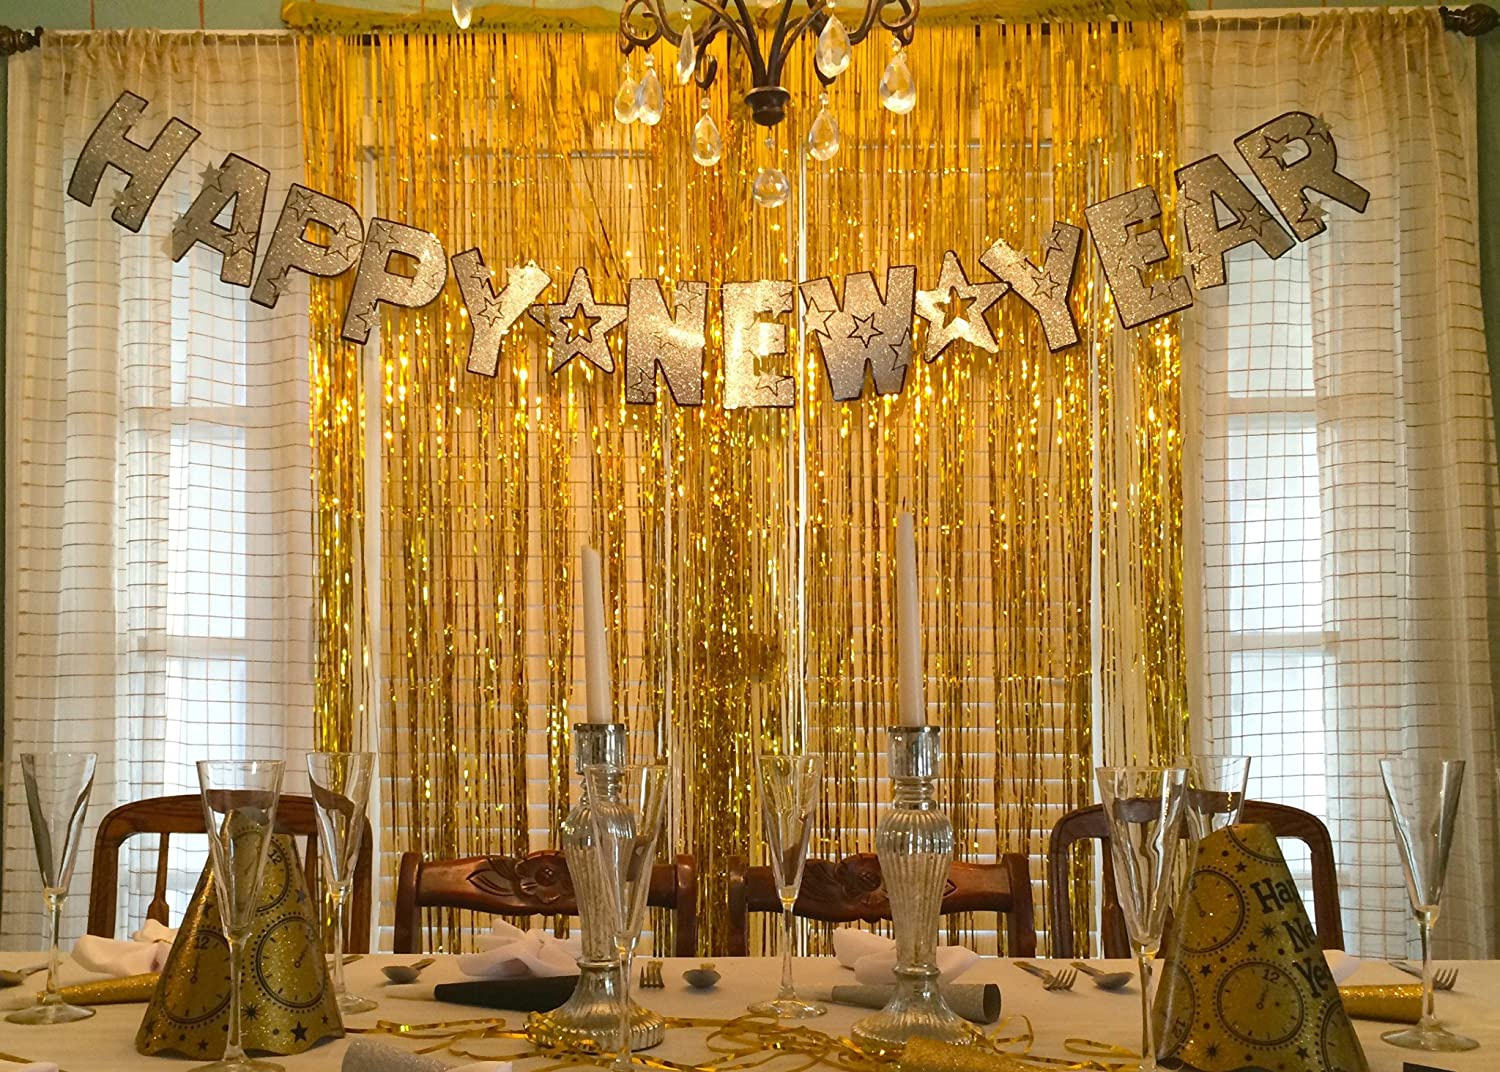 Com Gold Metallic Foil Party Tassel Curtain Fringe Wall Decoration Hanging 3 X 8 Coming Soon Kitchen Dining